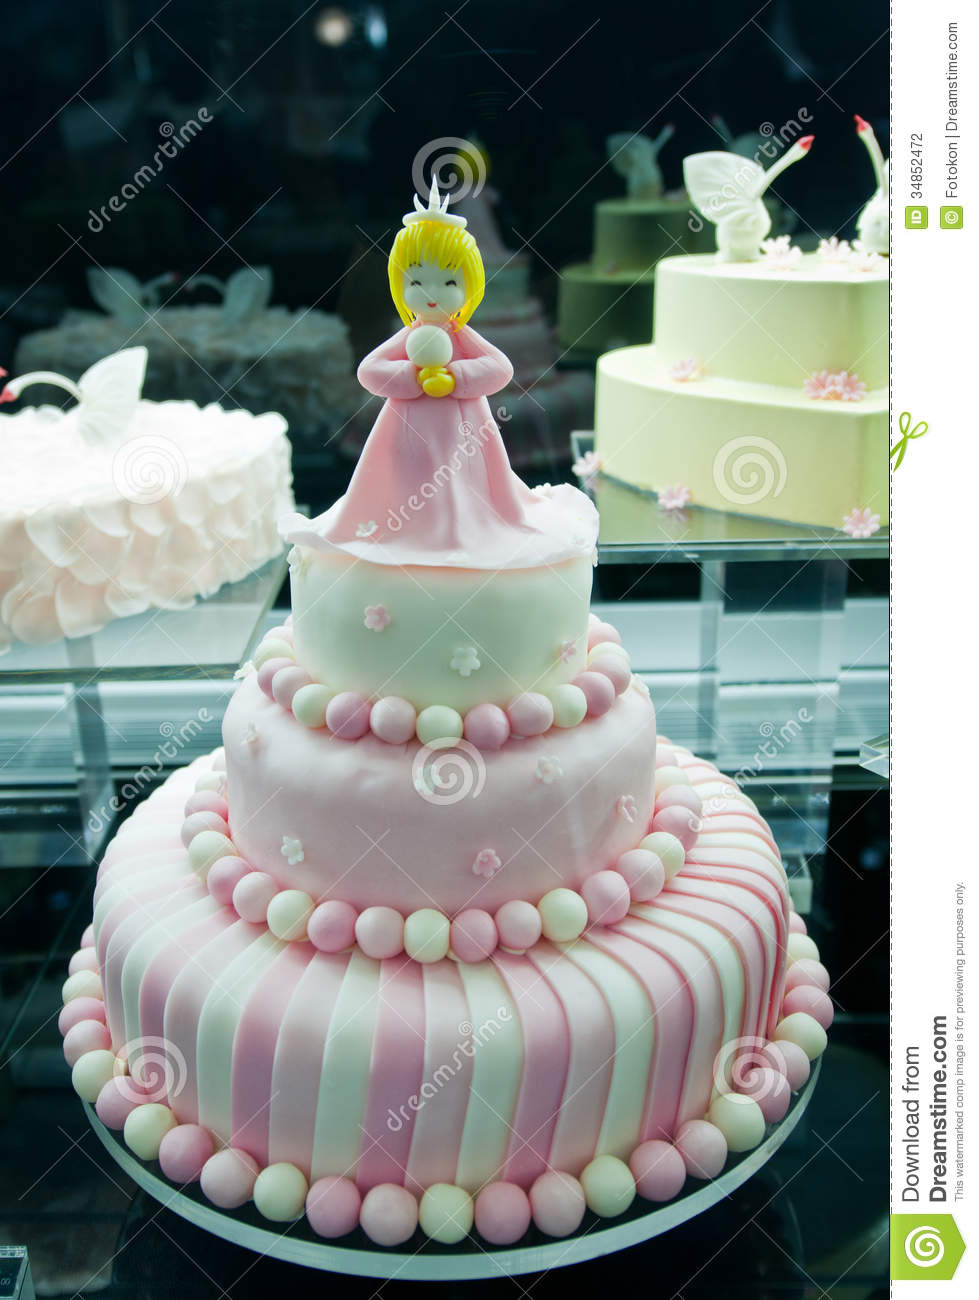 Very Nice Cake Images : Sweet cake stock photo. Image of republic, pekin, peking ...